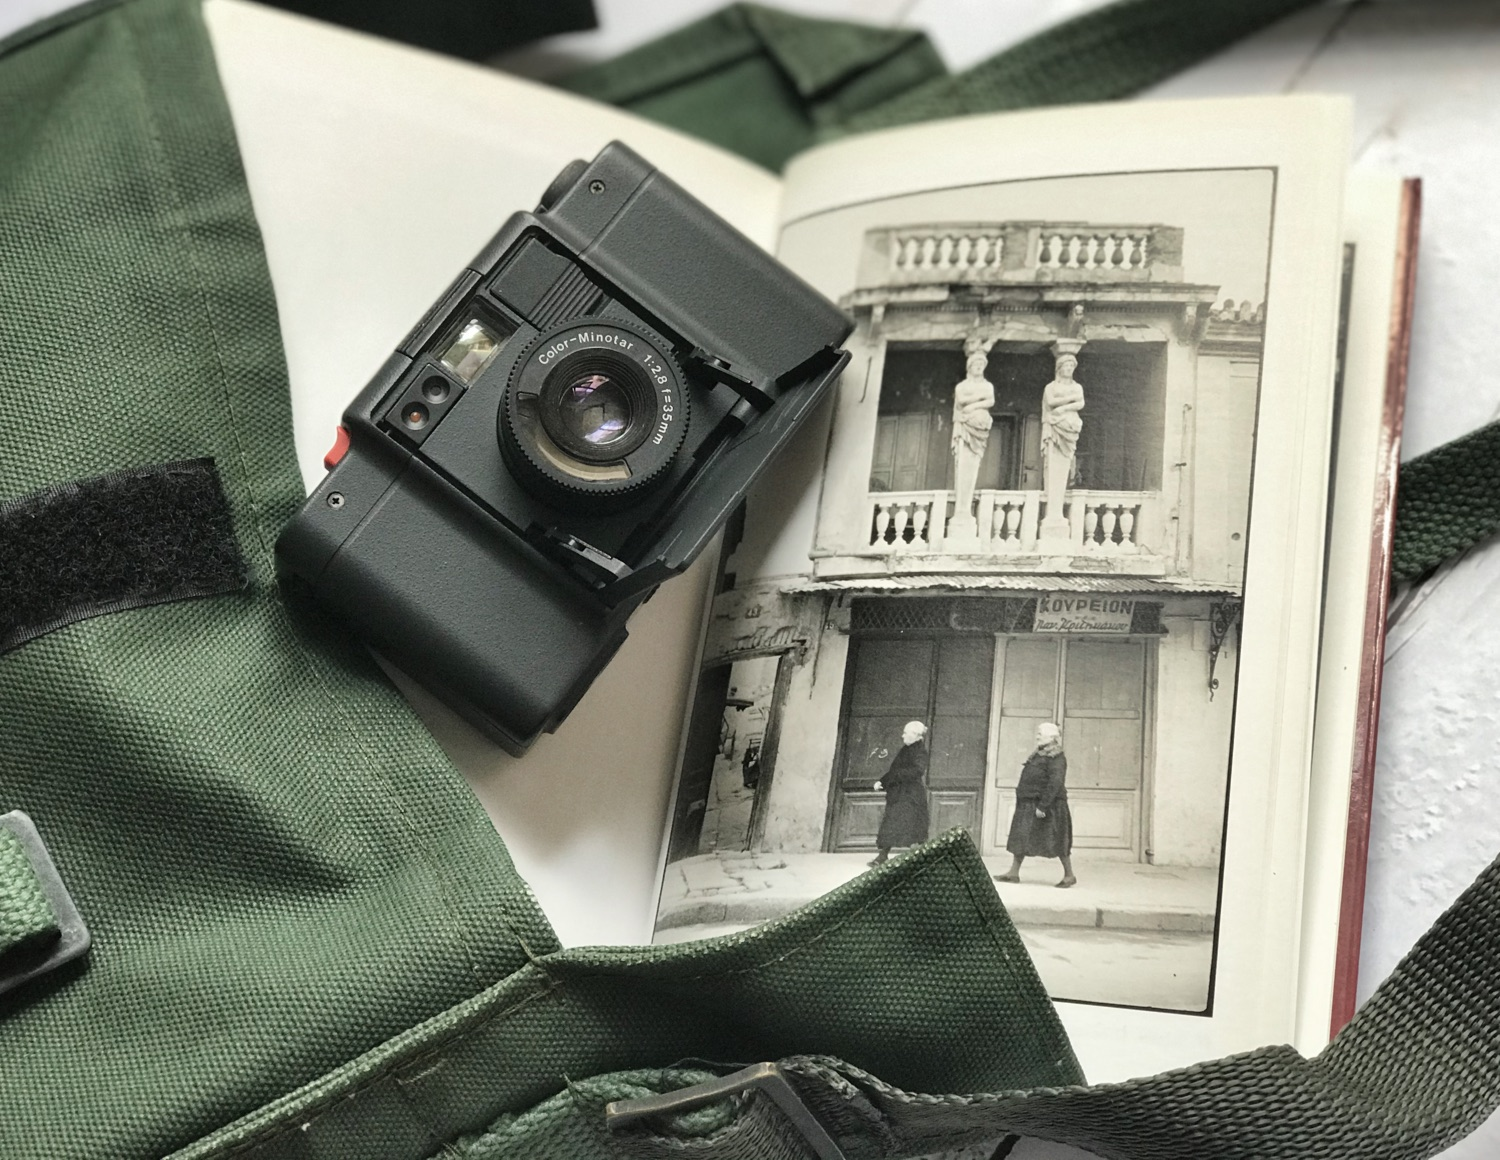 Minox Touring and Cartier-Bresson image (Pic: Lester Ledesma)